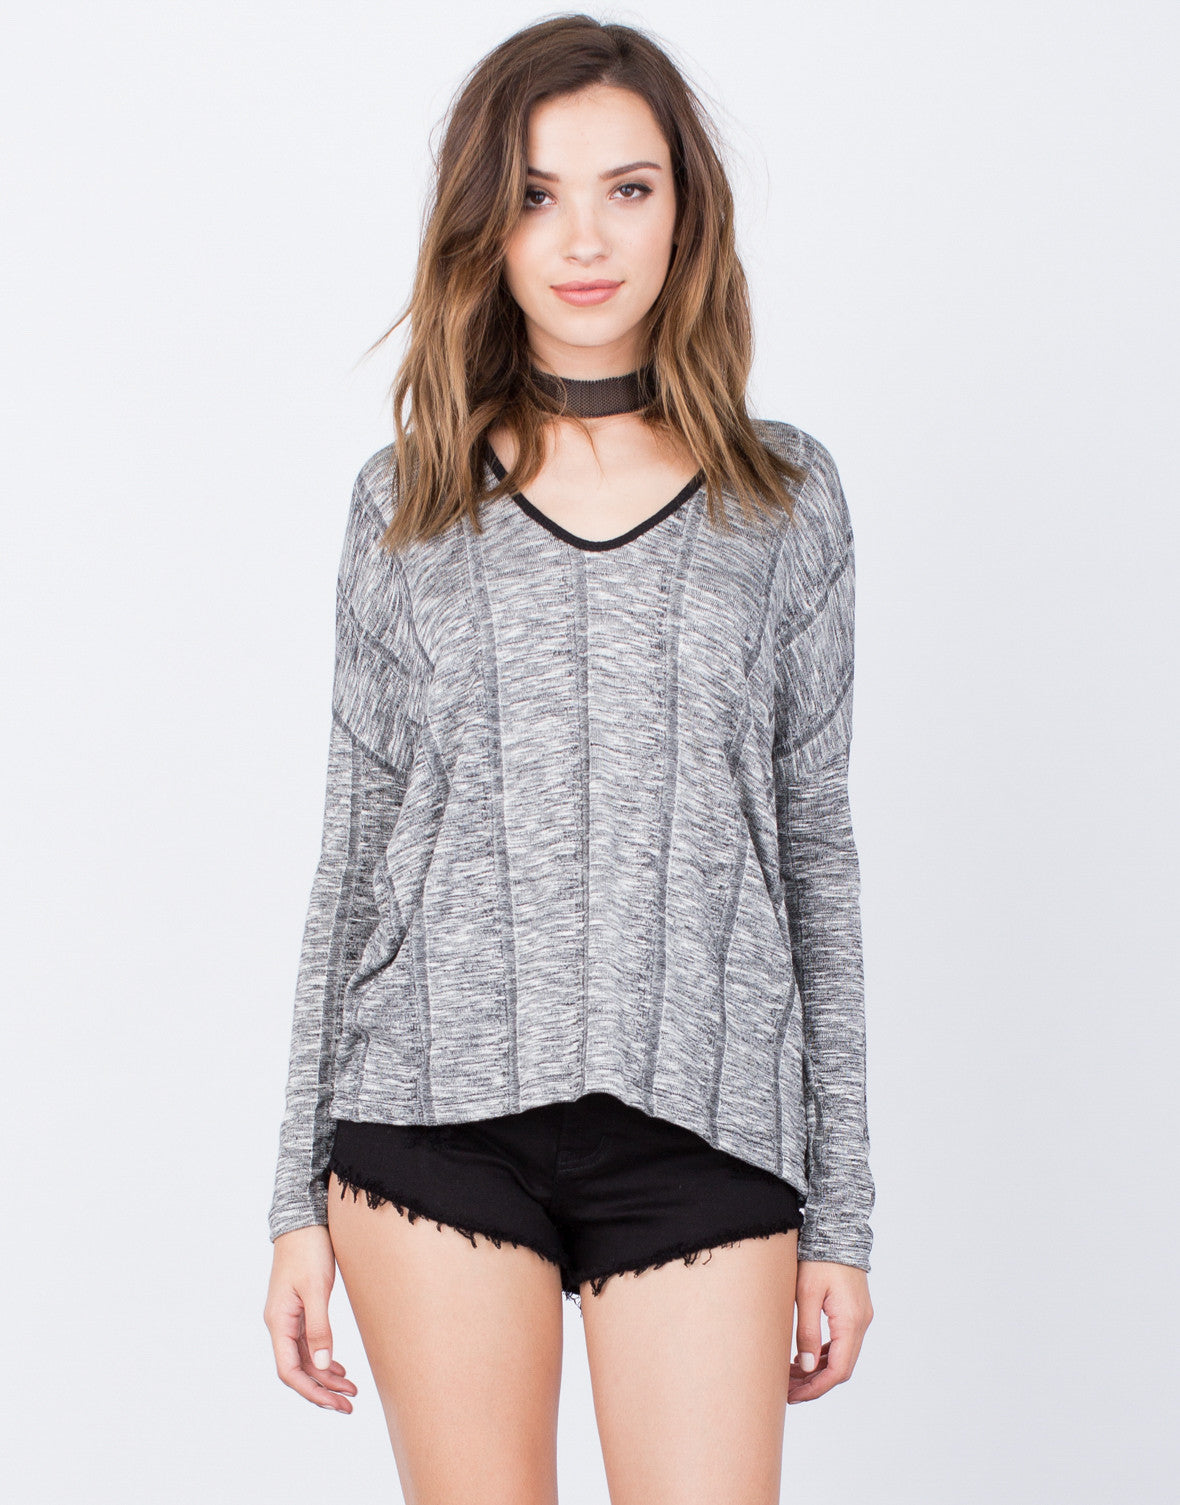 Front View of L/S Rib Knit Top